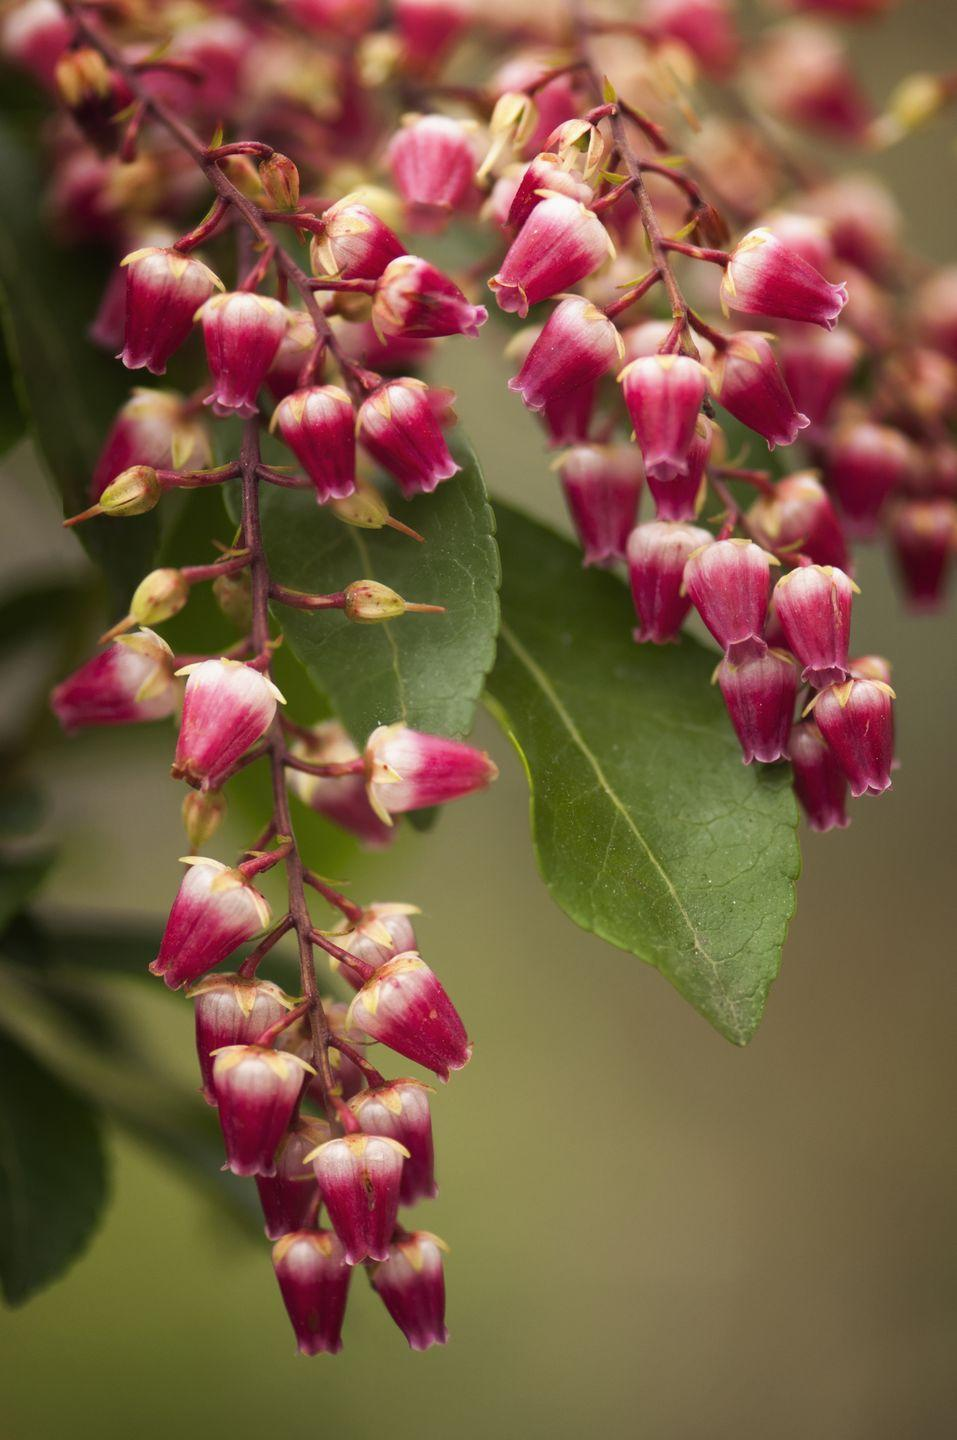 "<p>Tiny bells dangle from the branches of this shrub in early spring. Lily of the valley shrub, also called pieris, is a lovely and less-recognized shrub for any garden. They top out at 3 to 4 feet tall and prefer part sun with afternoon shade. </p><p><a class=""link rapid-noclick-resp"" href=""https://go.redirectingat.com?id=74968X1596630&url=https%3A%2F%2Fwww.homedepot.com%2Fp%2F4-5-in-Quart-Interstella-Lily-of-the-Valley-Shrub-Pieris-Live-Plant-Ruby-Red-Flowers-PIEPRC1007800%2F310916722&sref=https%3A%2F%2Fwww.thepioneerwoman.com%2Fhome-lifestyle%2Fgardening%2Fg36154837%2Fsmall-shrubs%2F"" rel=""nofollow noopener"" target=""_blank"" data-ylk=""slk:SHOP NOW"">SHOP NOW</a> </p>"